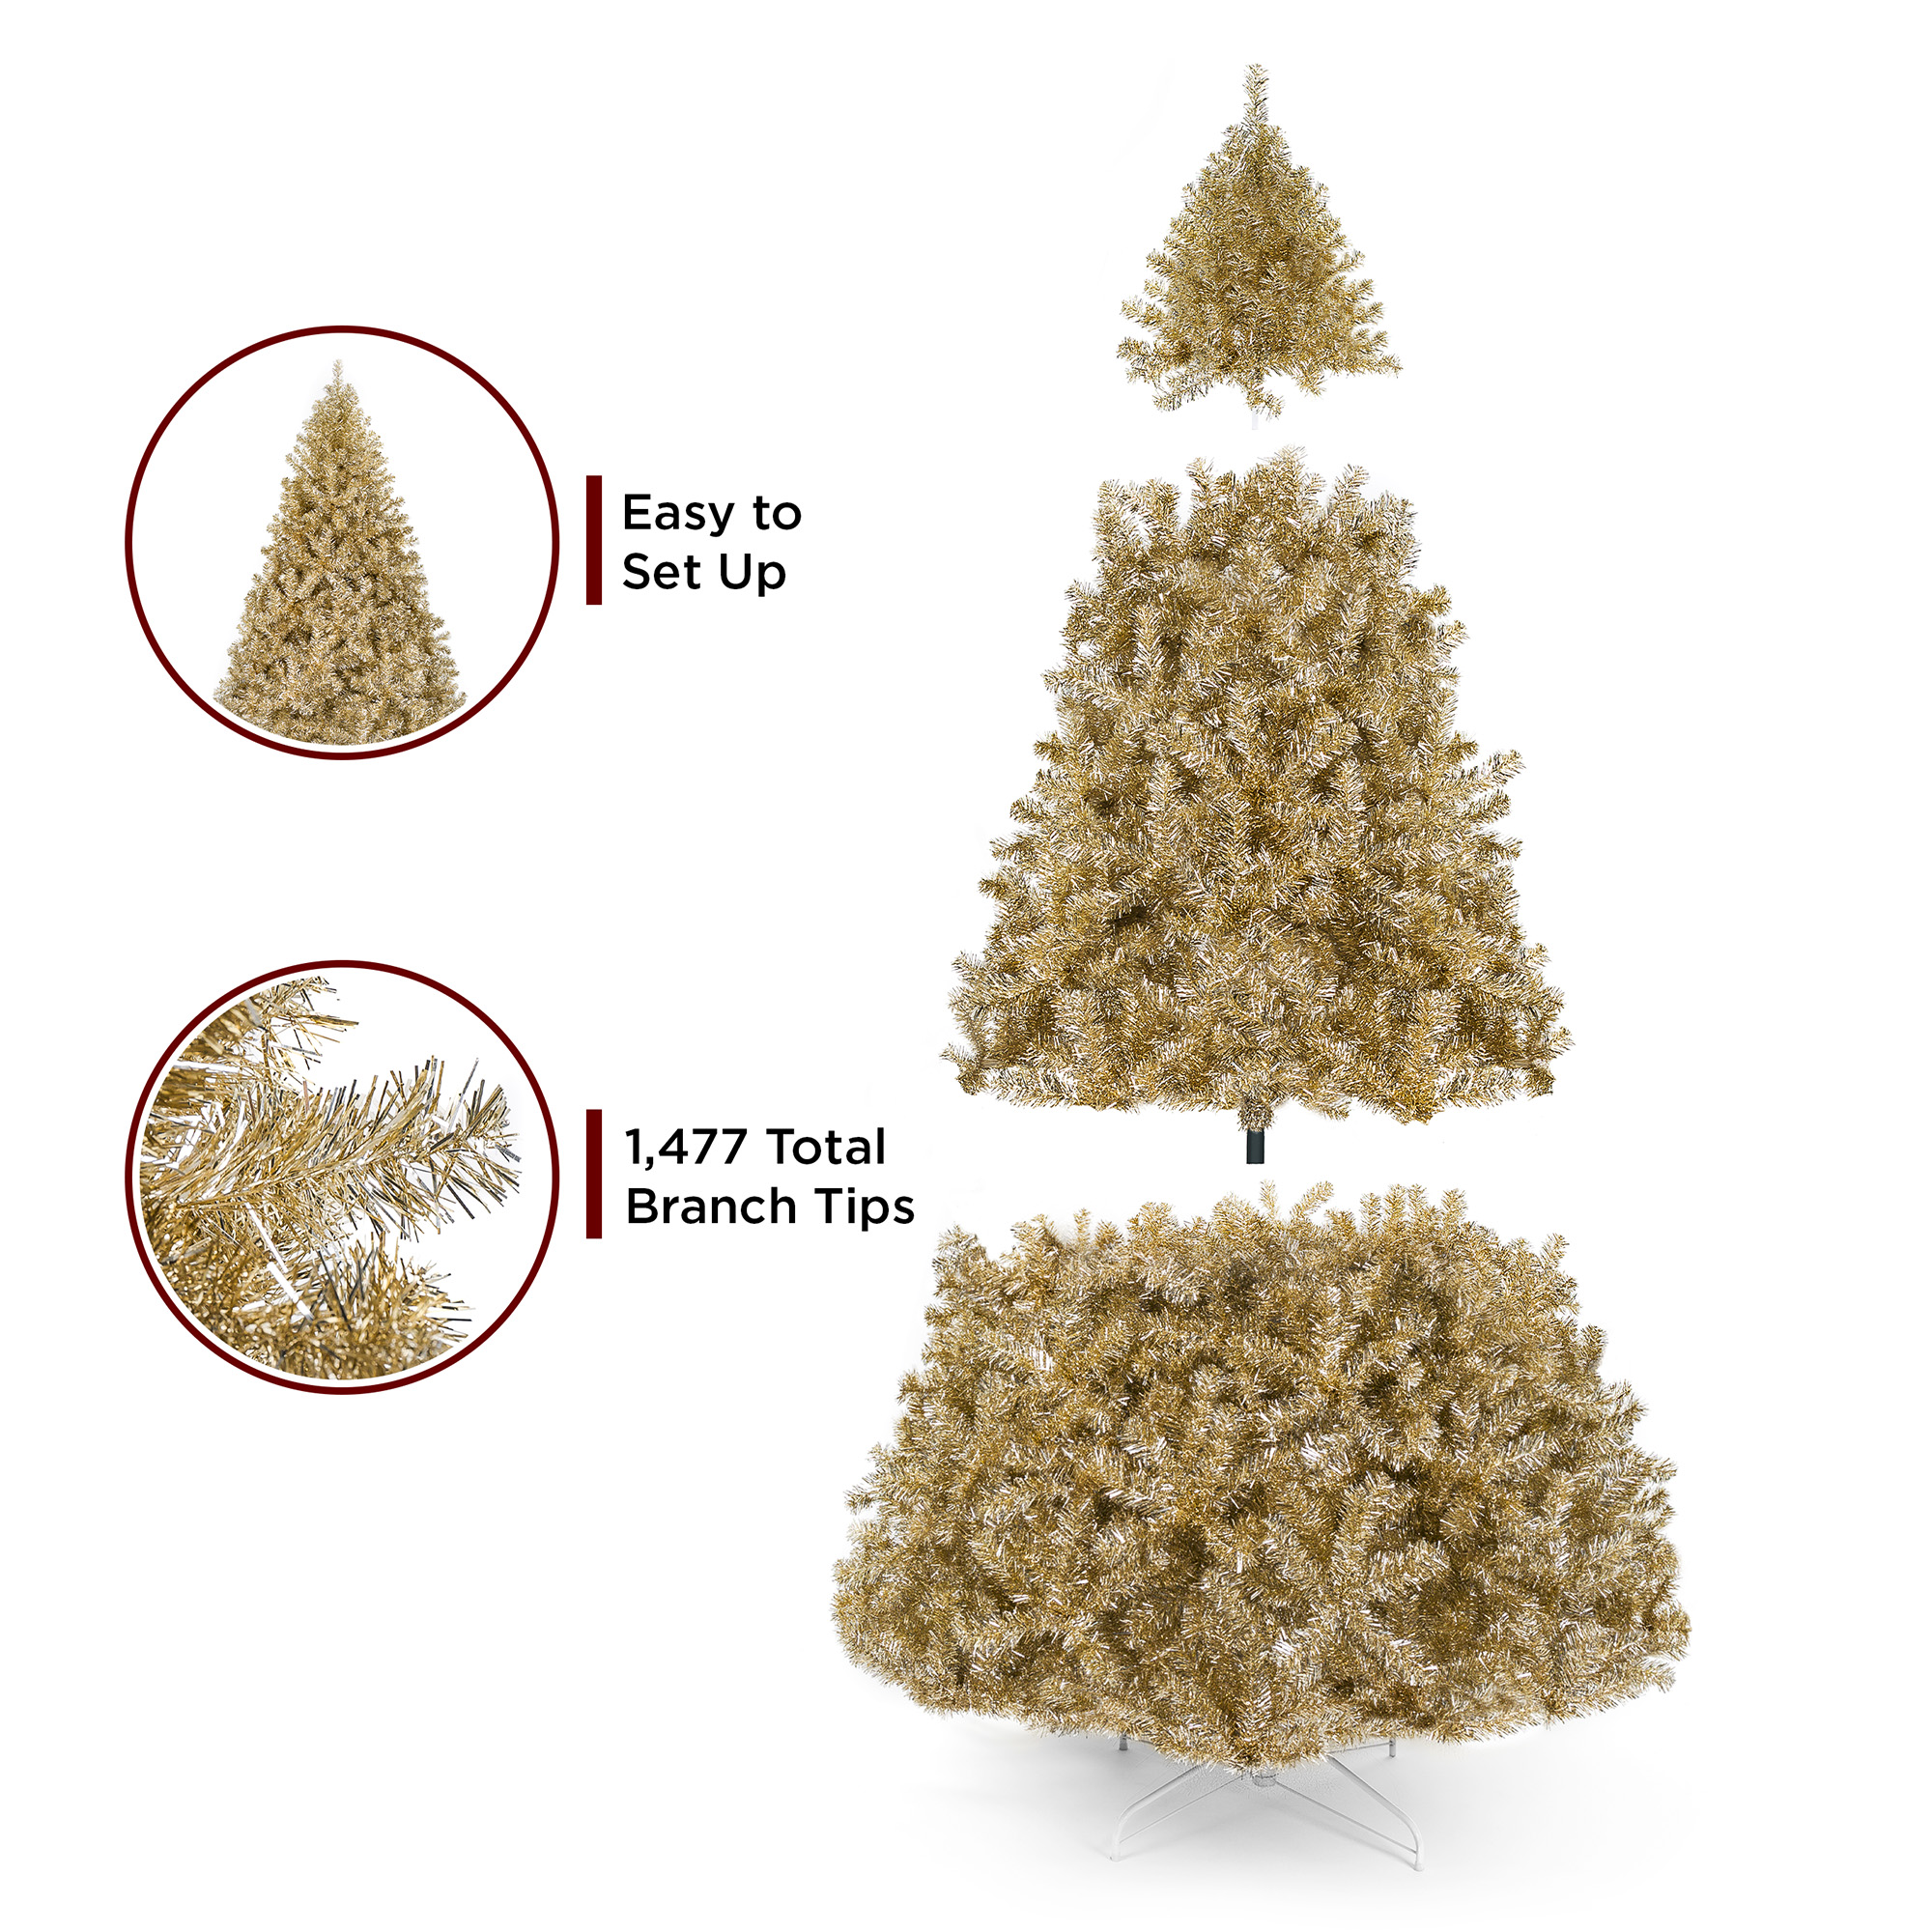 Best Choice Products 6ft Artificial Tinsel Christmas Tree W 1 477 Branch Tips Champagne Gold Walmart Com Walmart Com